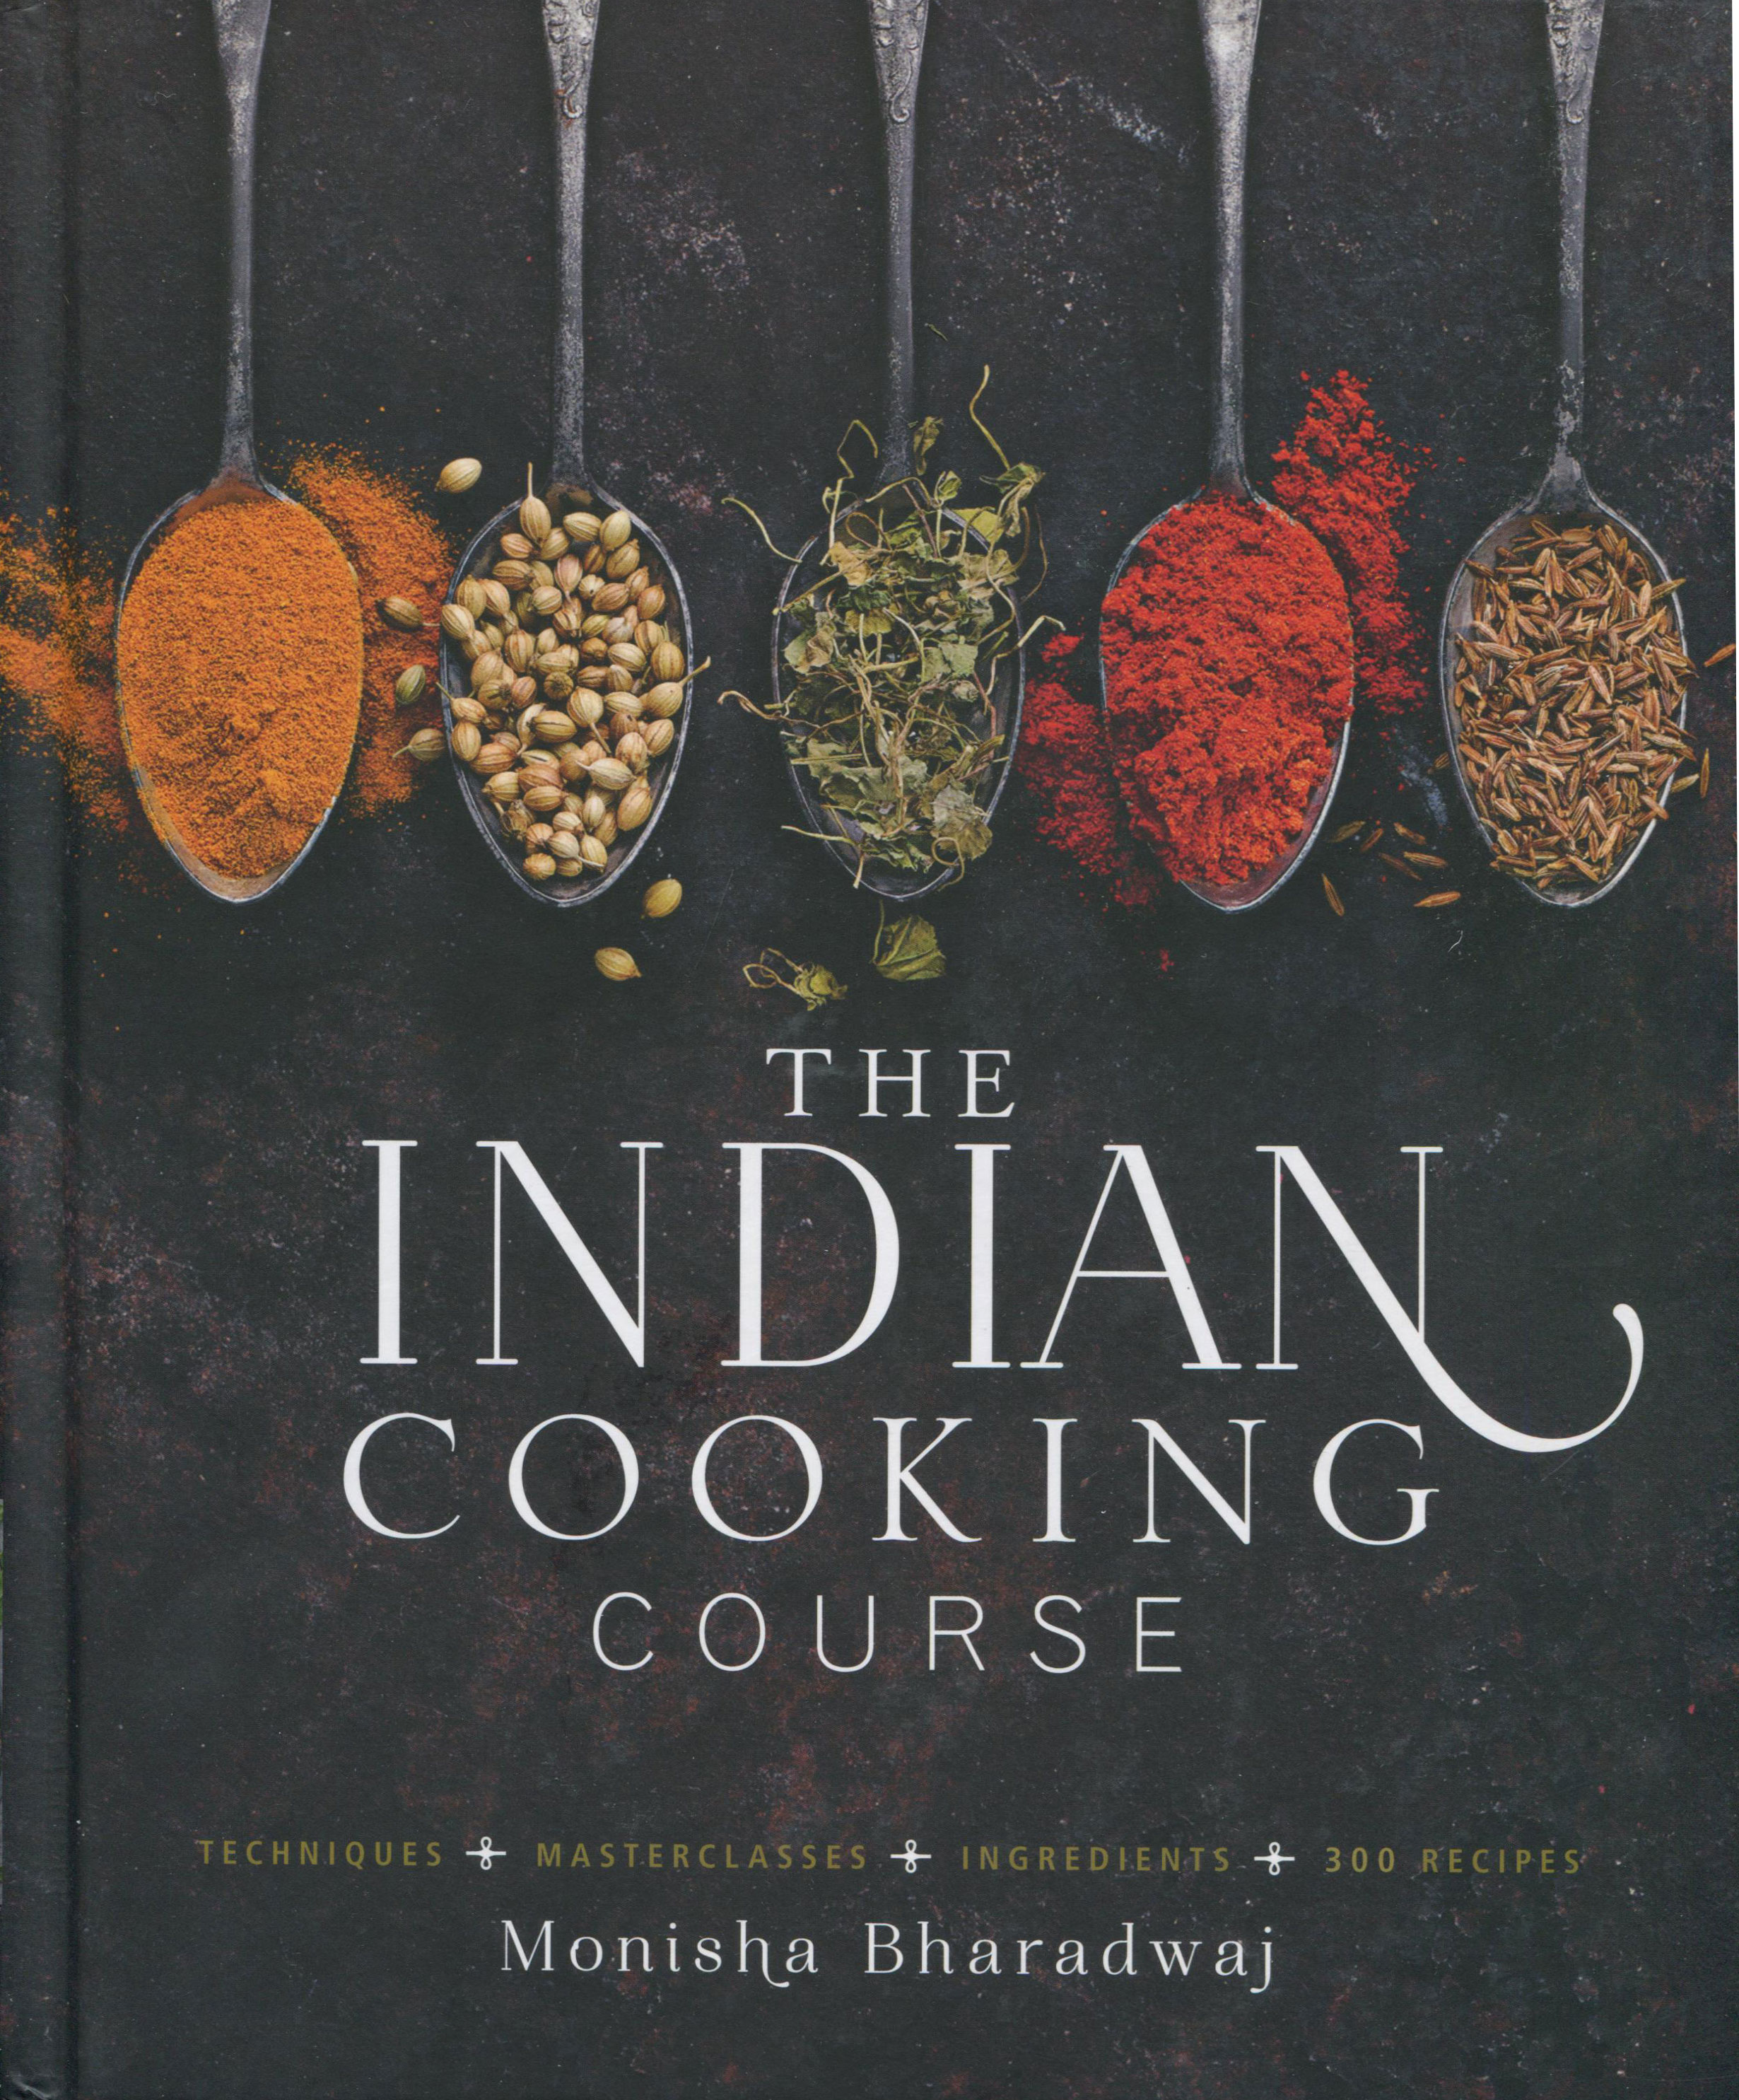 Cookbook Review: The Indian Cooking Course by Monisha Bharadwaj